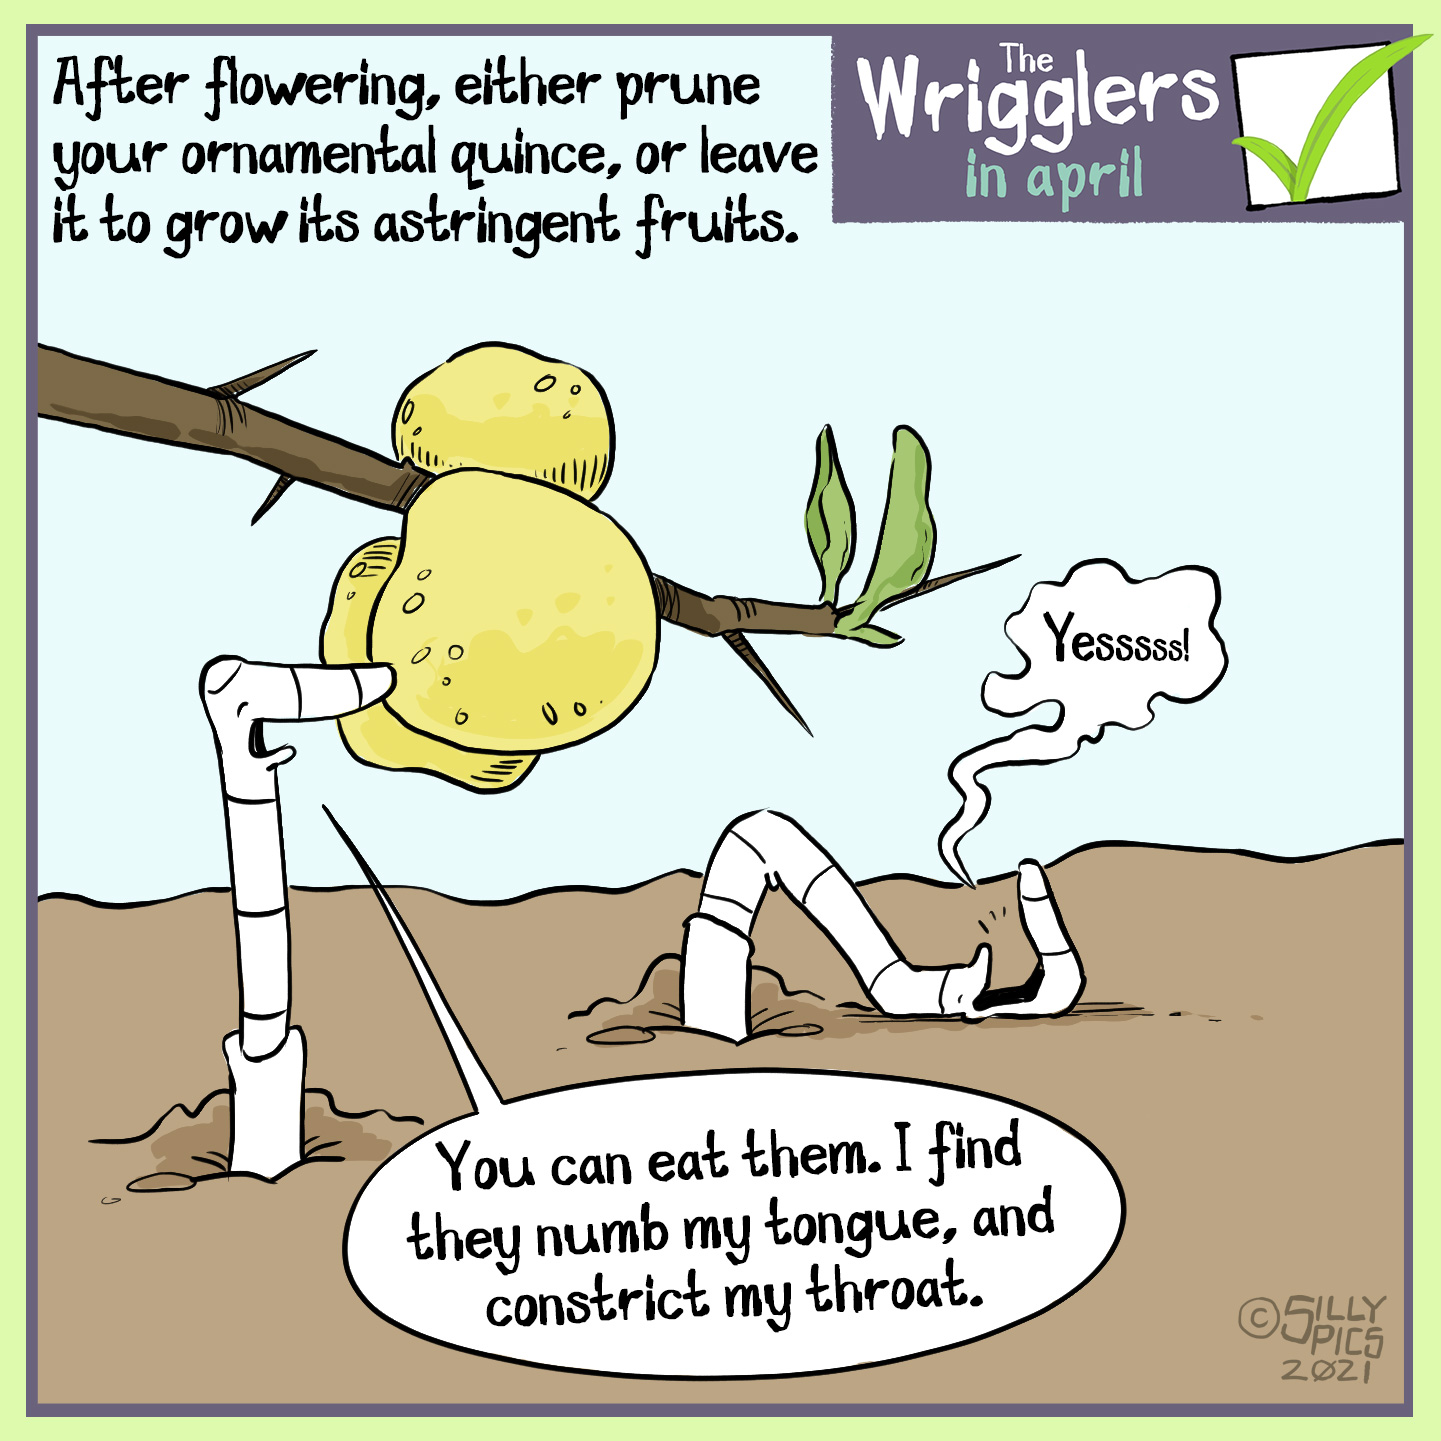 """After flowering either prune or leave your ornamental quince to grow its astringent fruits. In this cartoon two worms are looking at ornamental quince fruits on a branch at ground level. One worm explains, """"you can eat them, but I find they numb my tongue and contract my throat"""" The other worm is lying on its back with its mouth wide ope, it just says,""""yeeessss"""""""